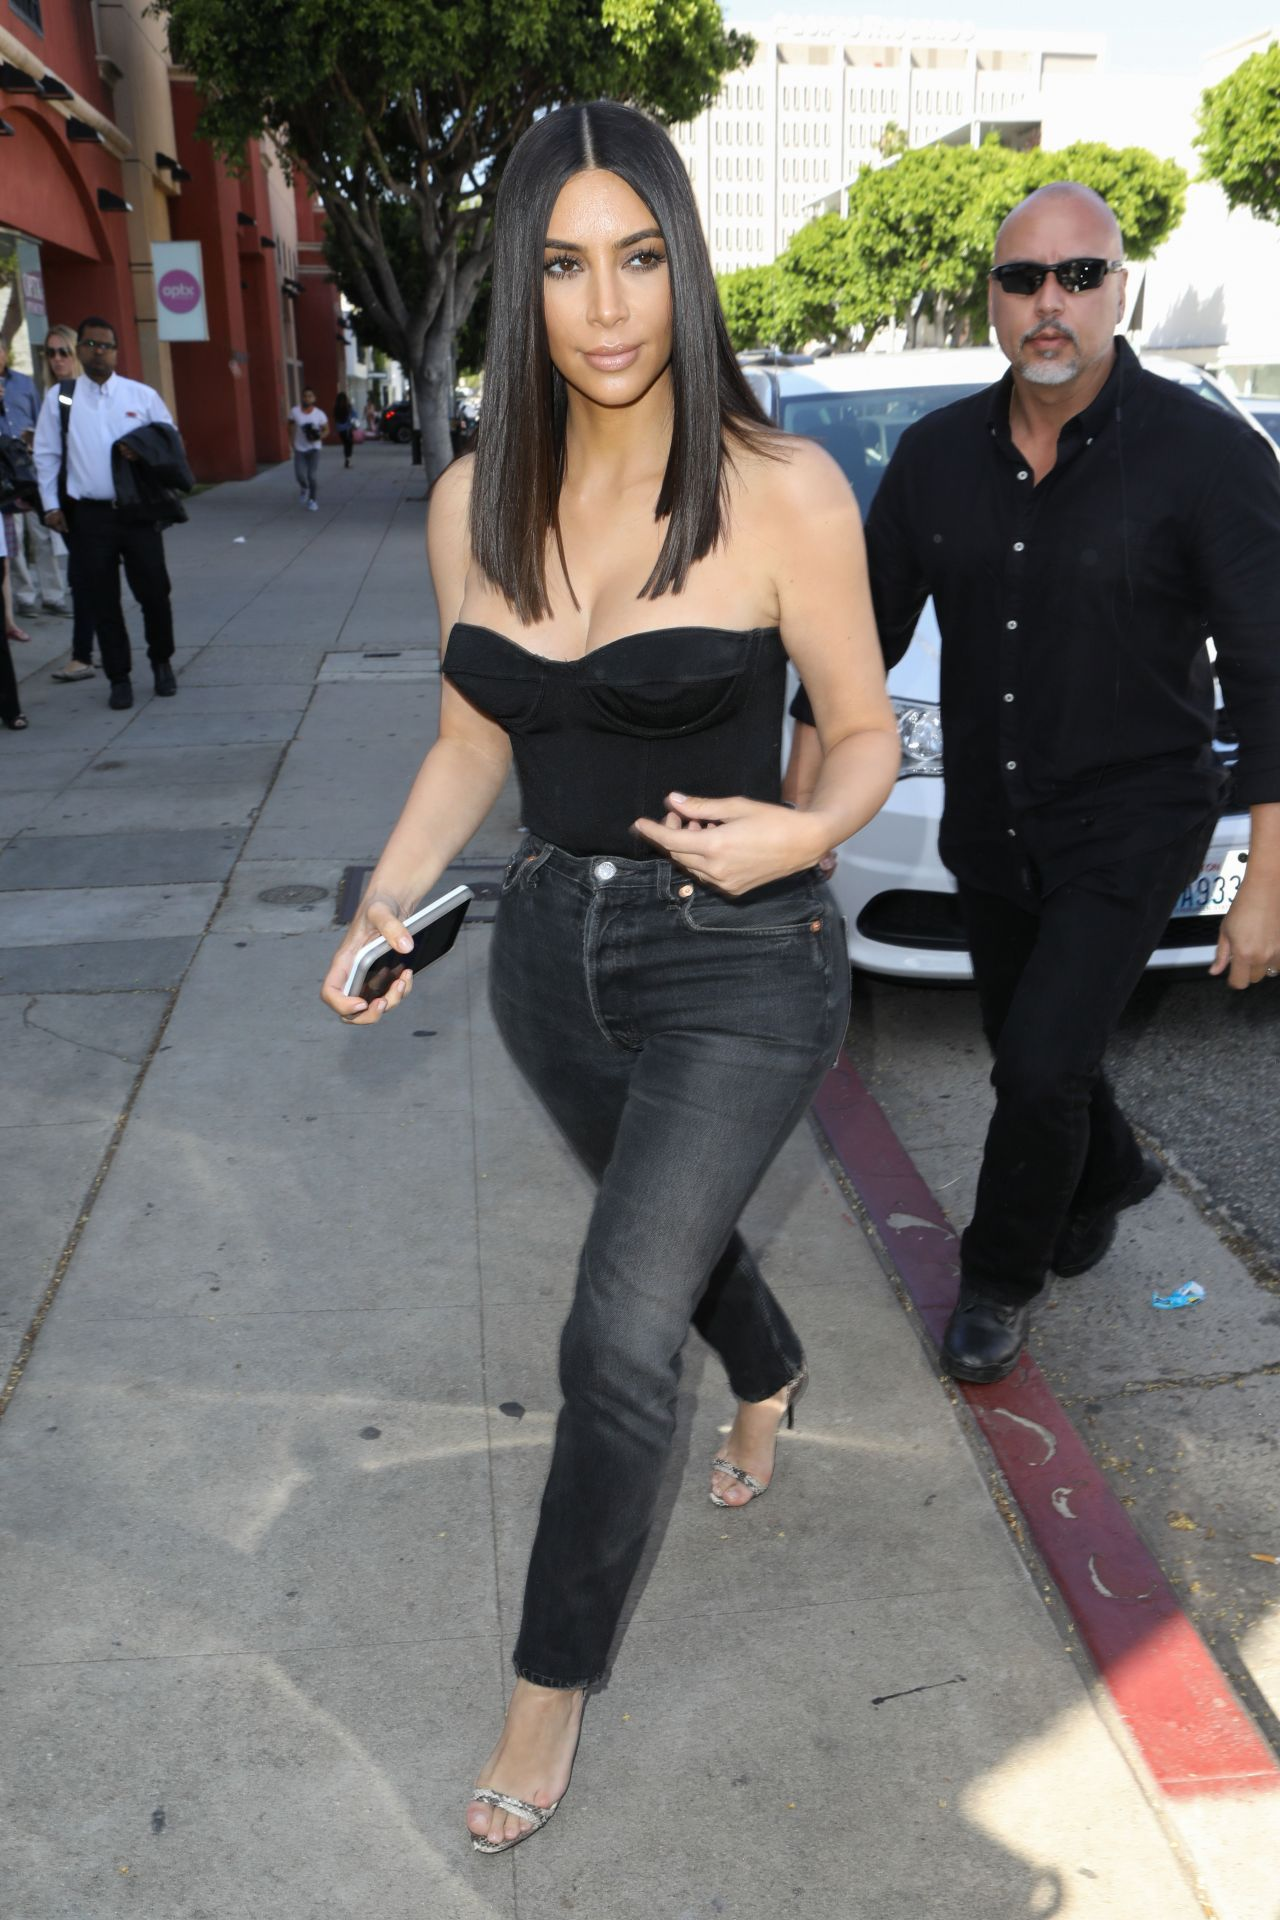 Kim Kardashian At Cuveee On Robertson Blvd In La 3 30 2017